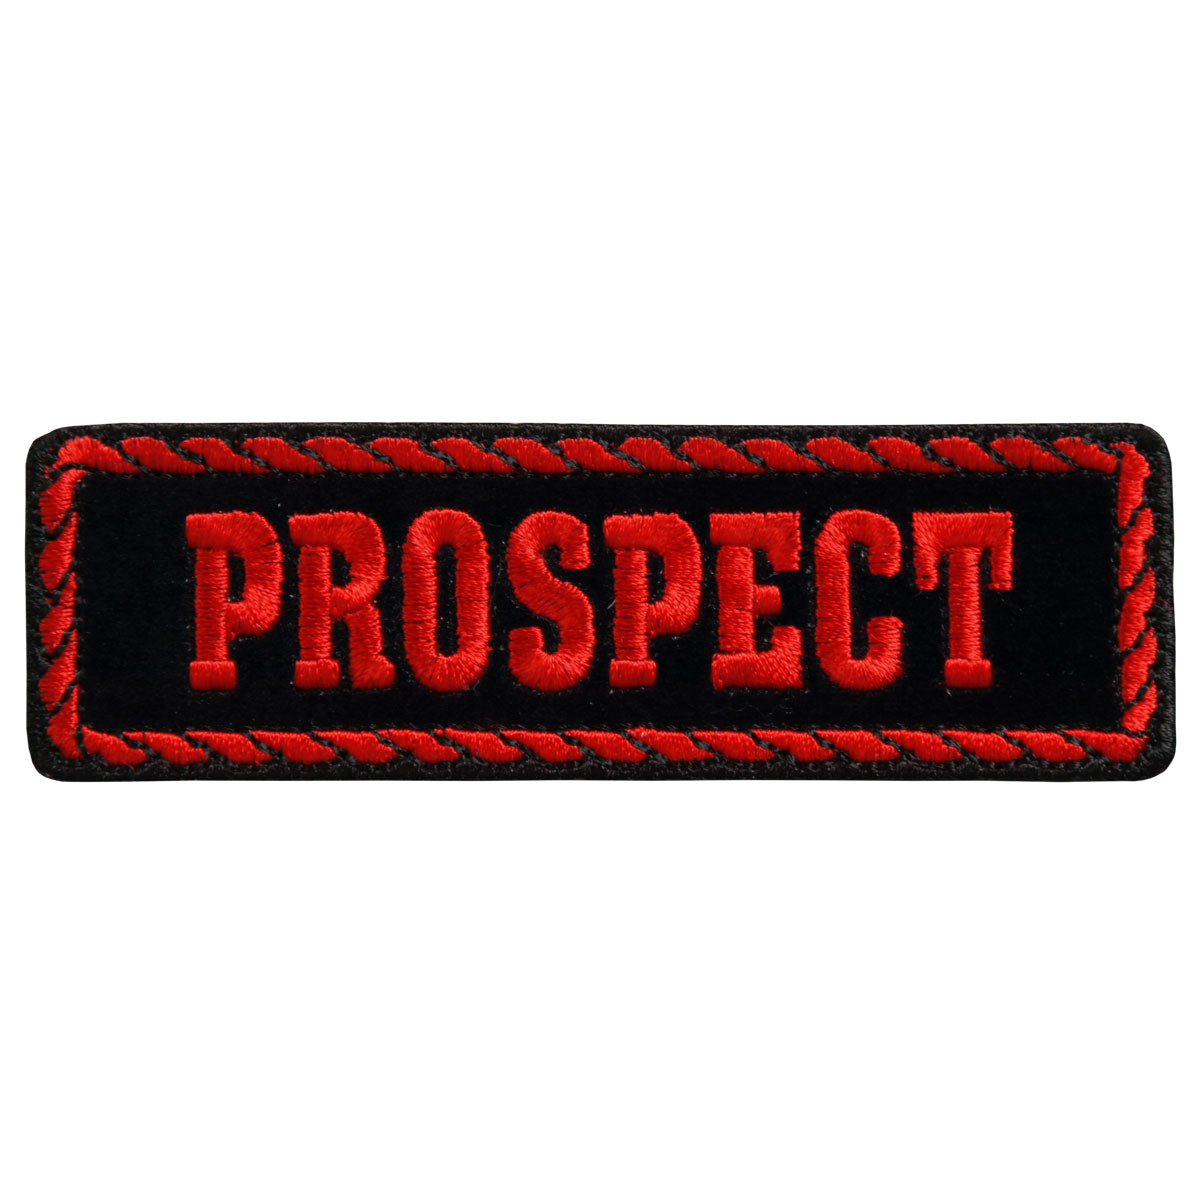 "Hot Leathers Red Officer Prospect 4"" x 1"" Patch"